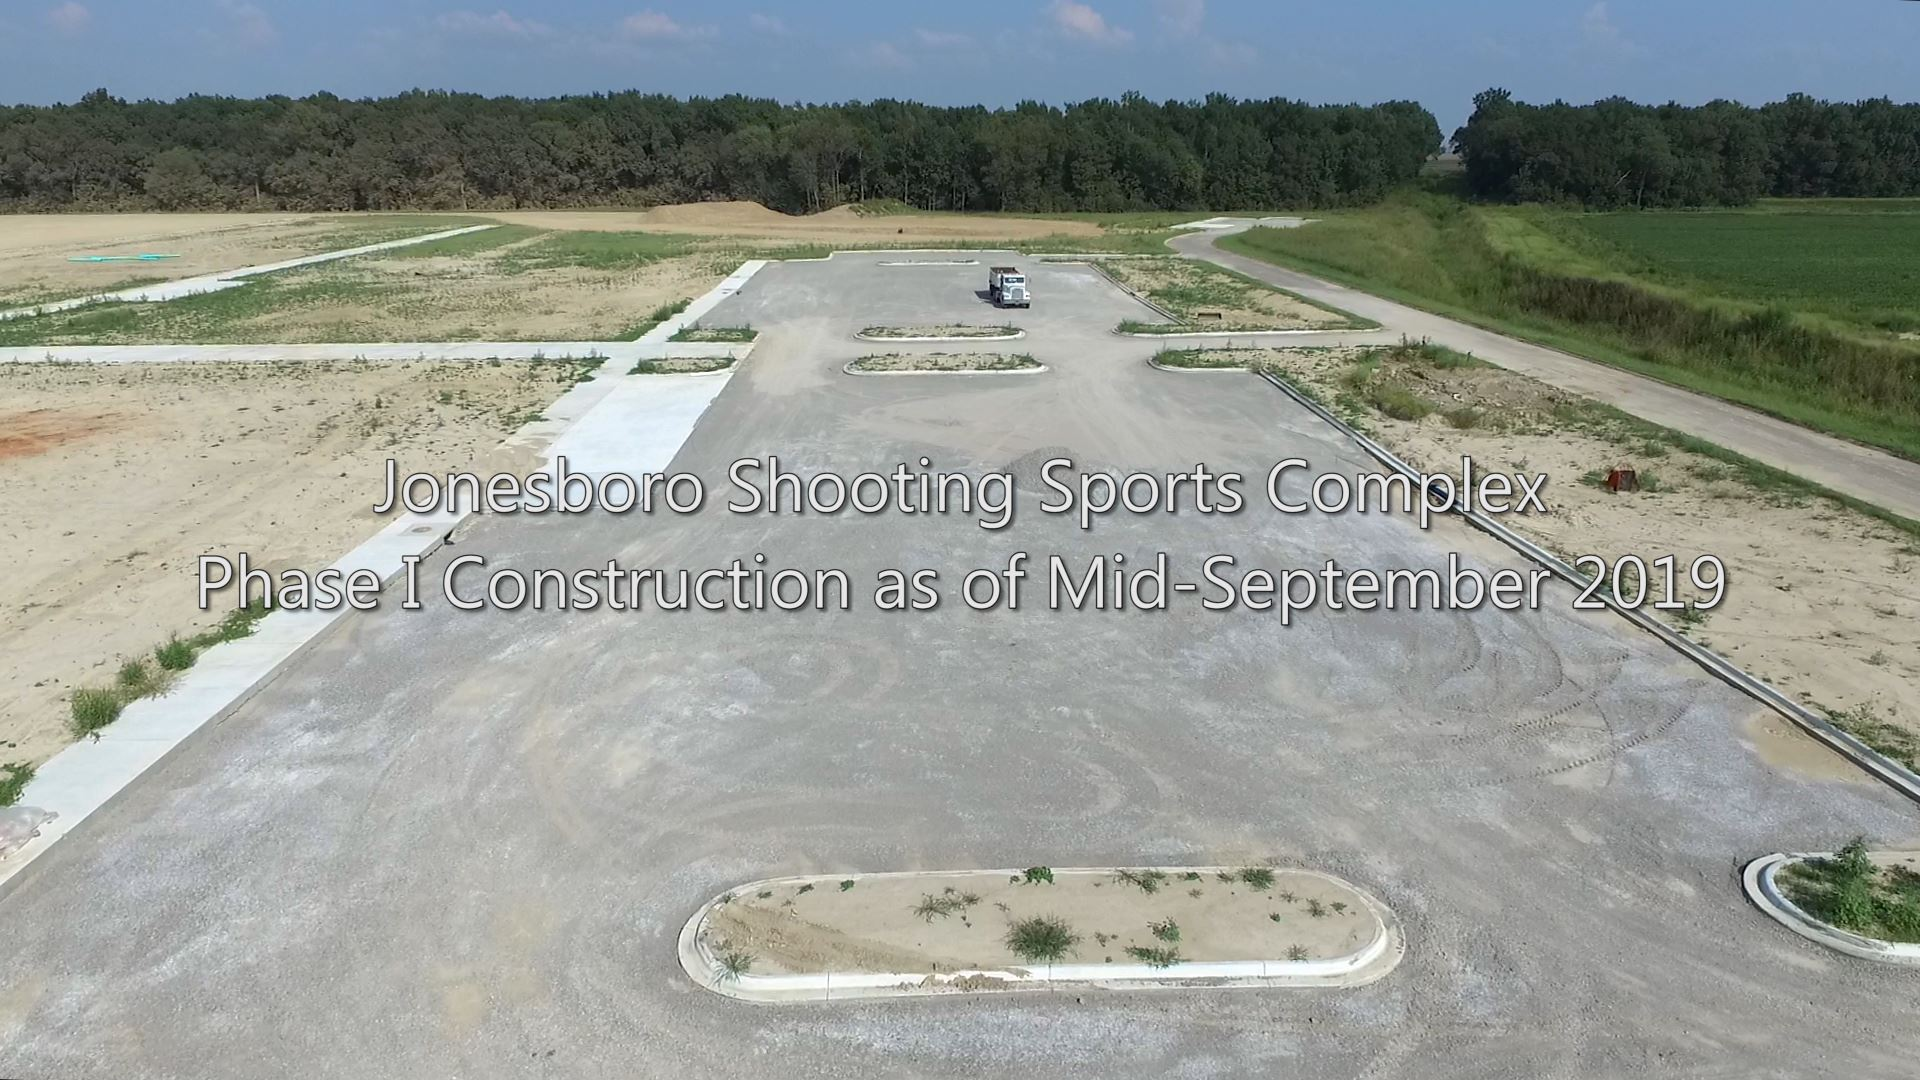 Jonesboro Shooting Sports Complex Phase I Construction as of Mid-September 2019